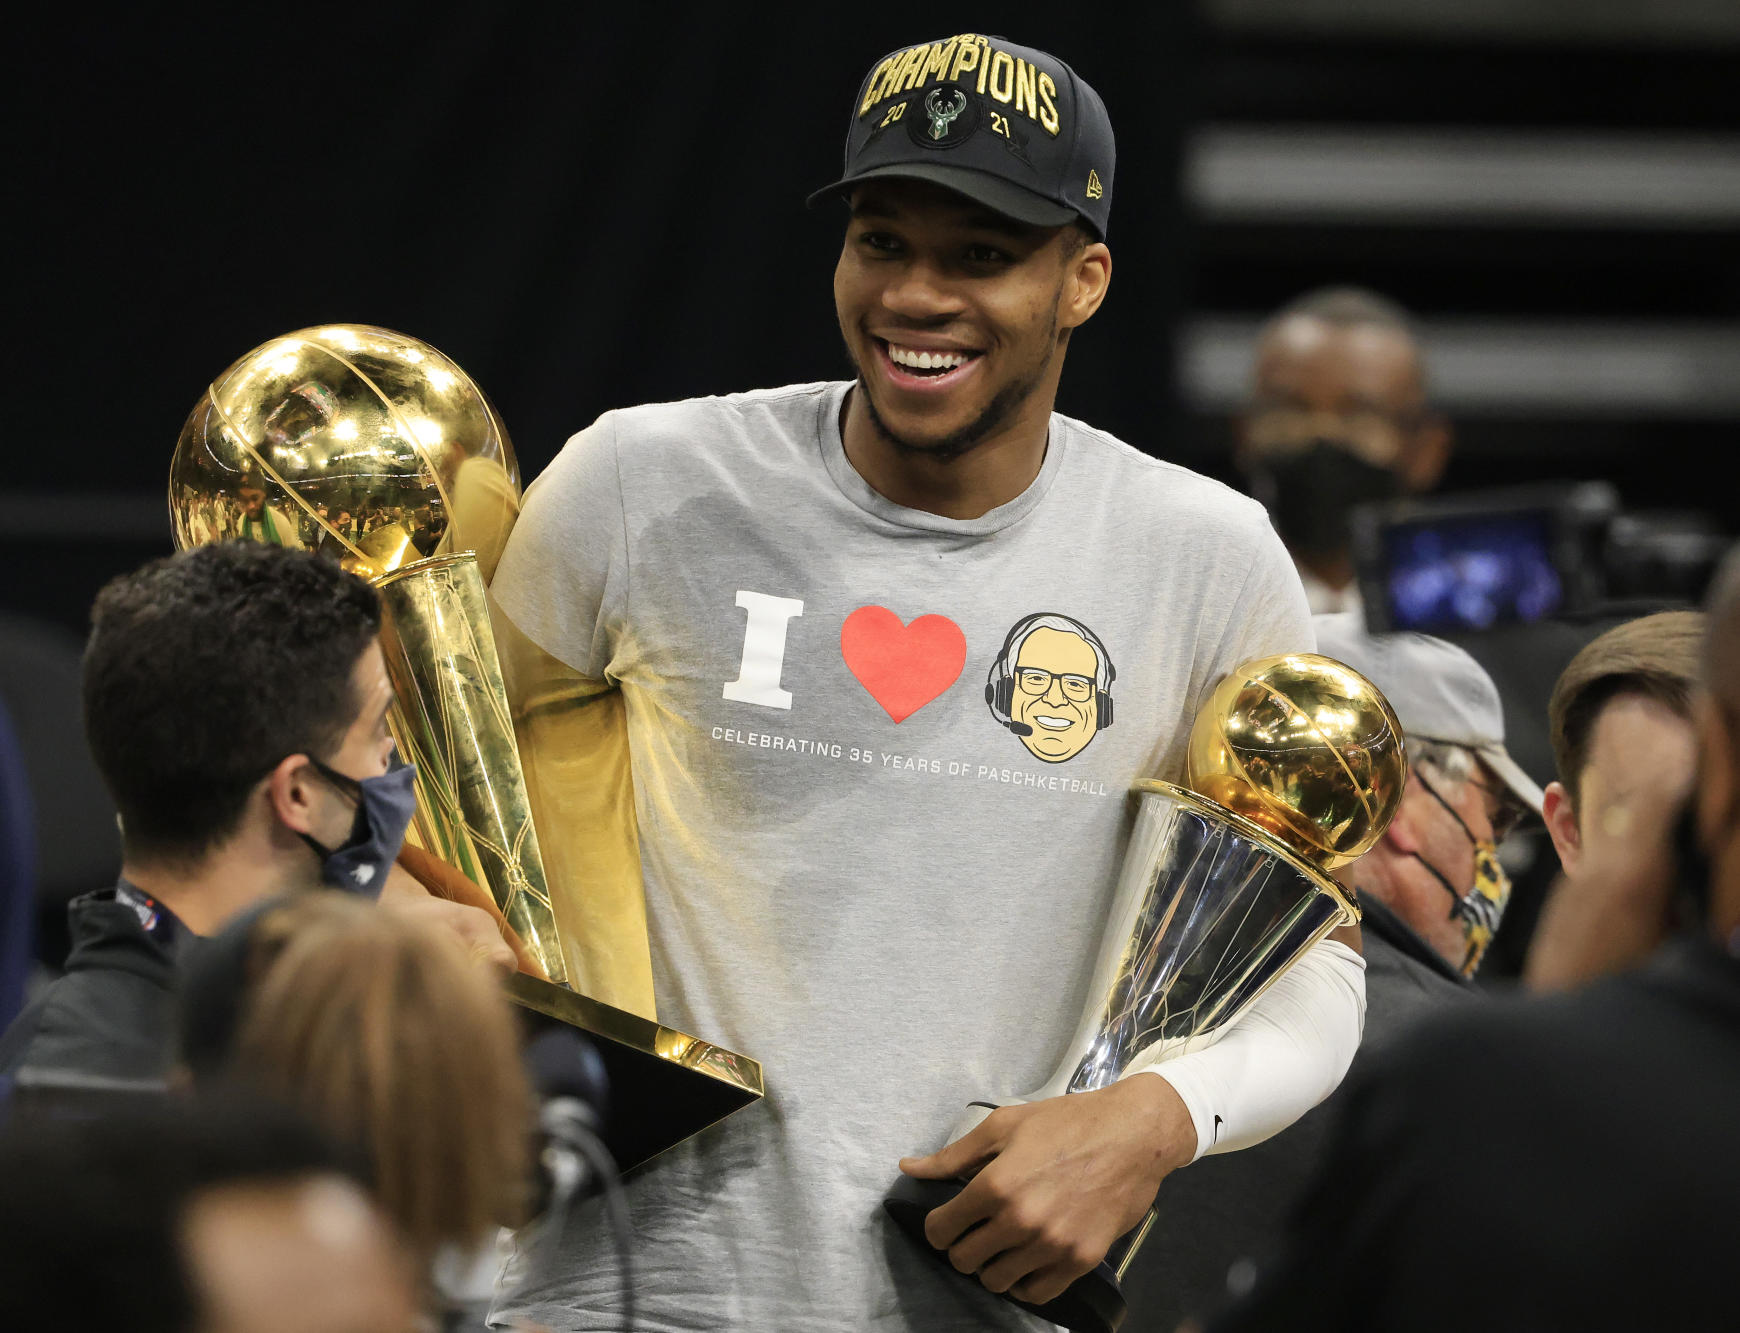 Giannis Antetokounmpo won a title his way, and the NBA is better for it